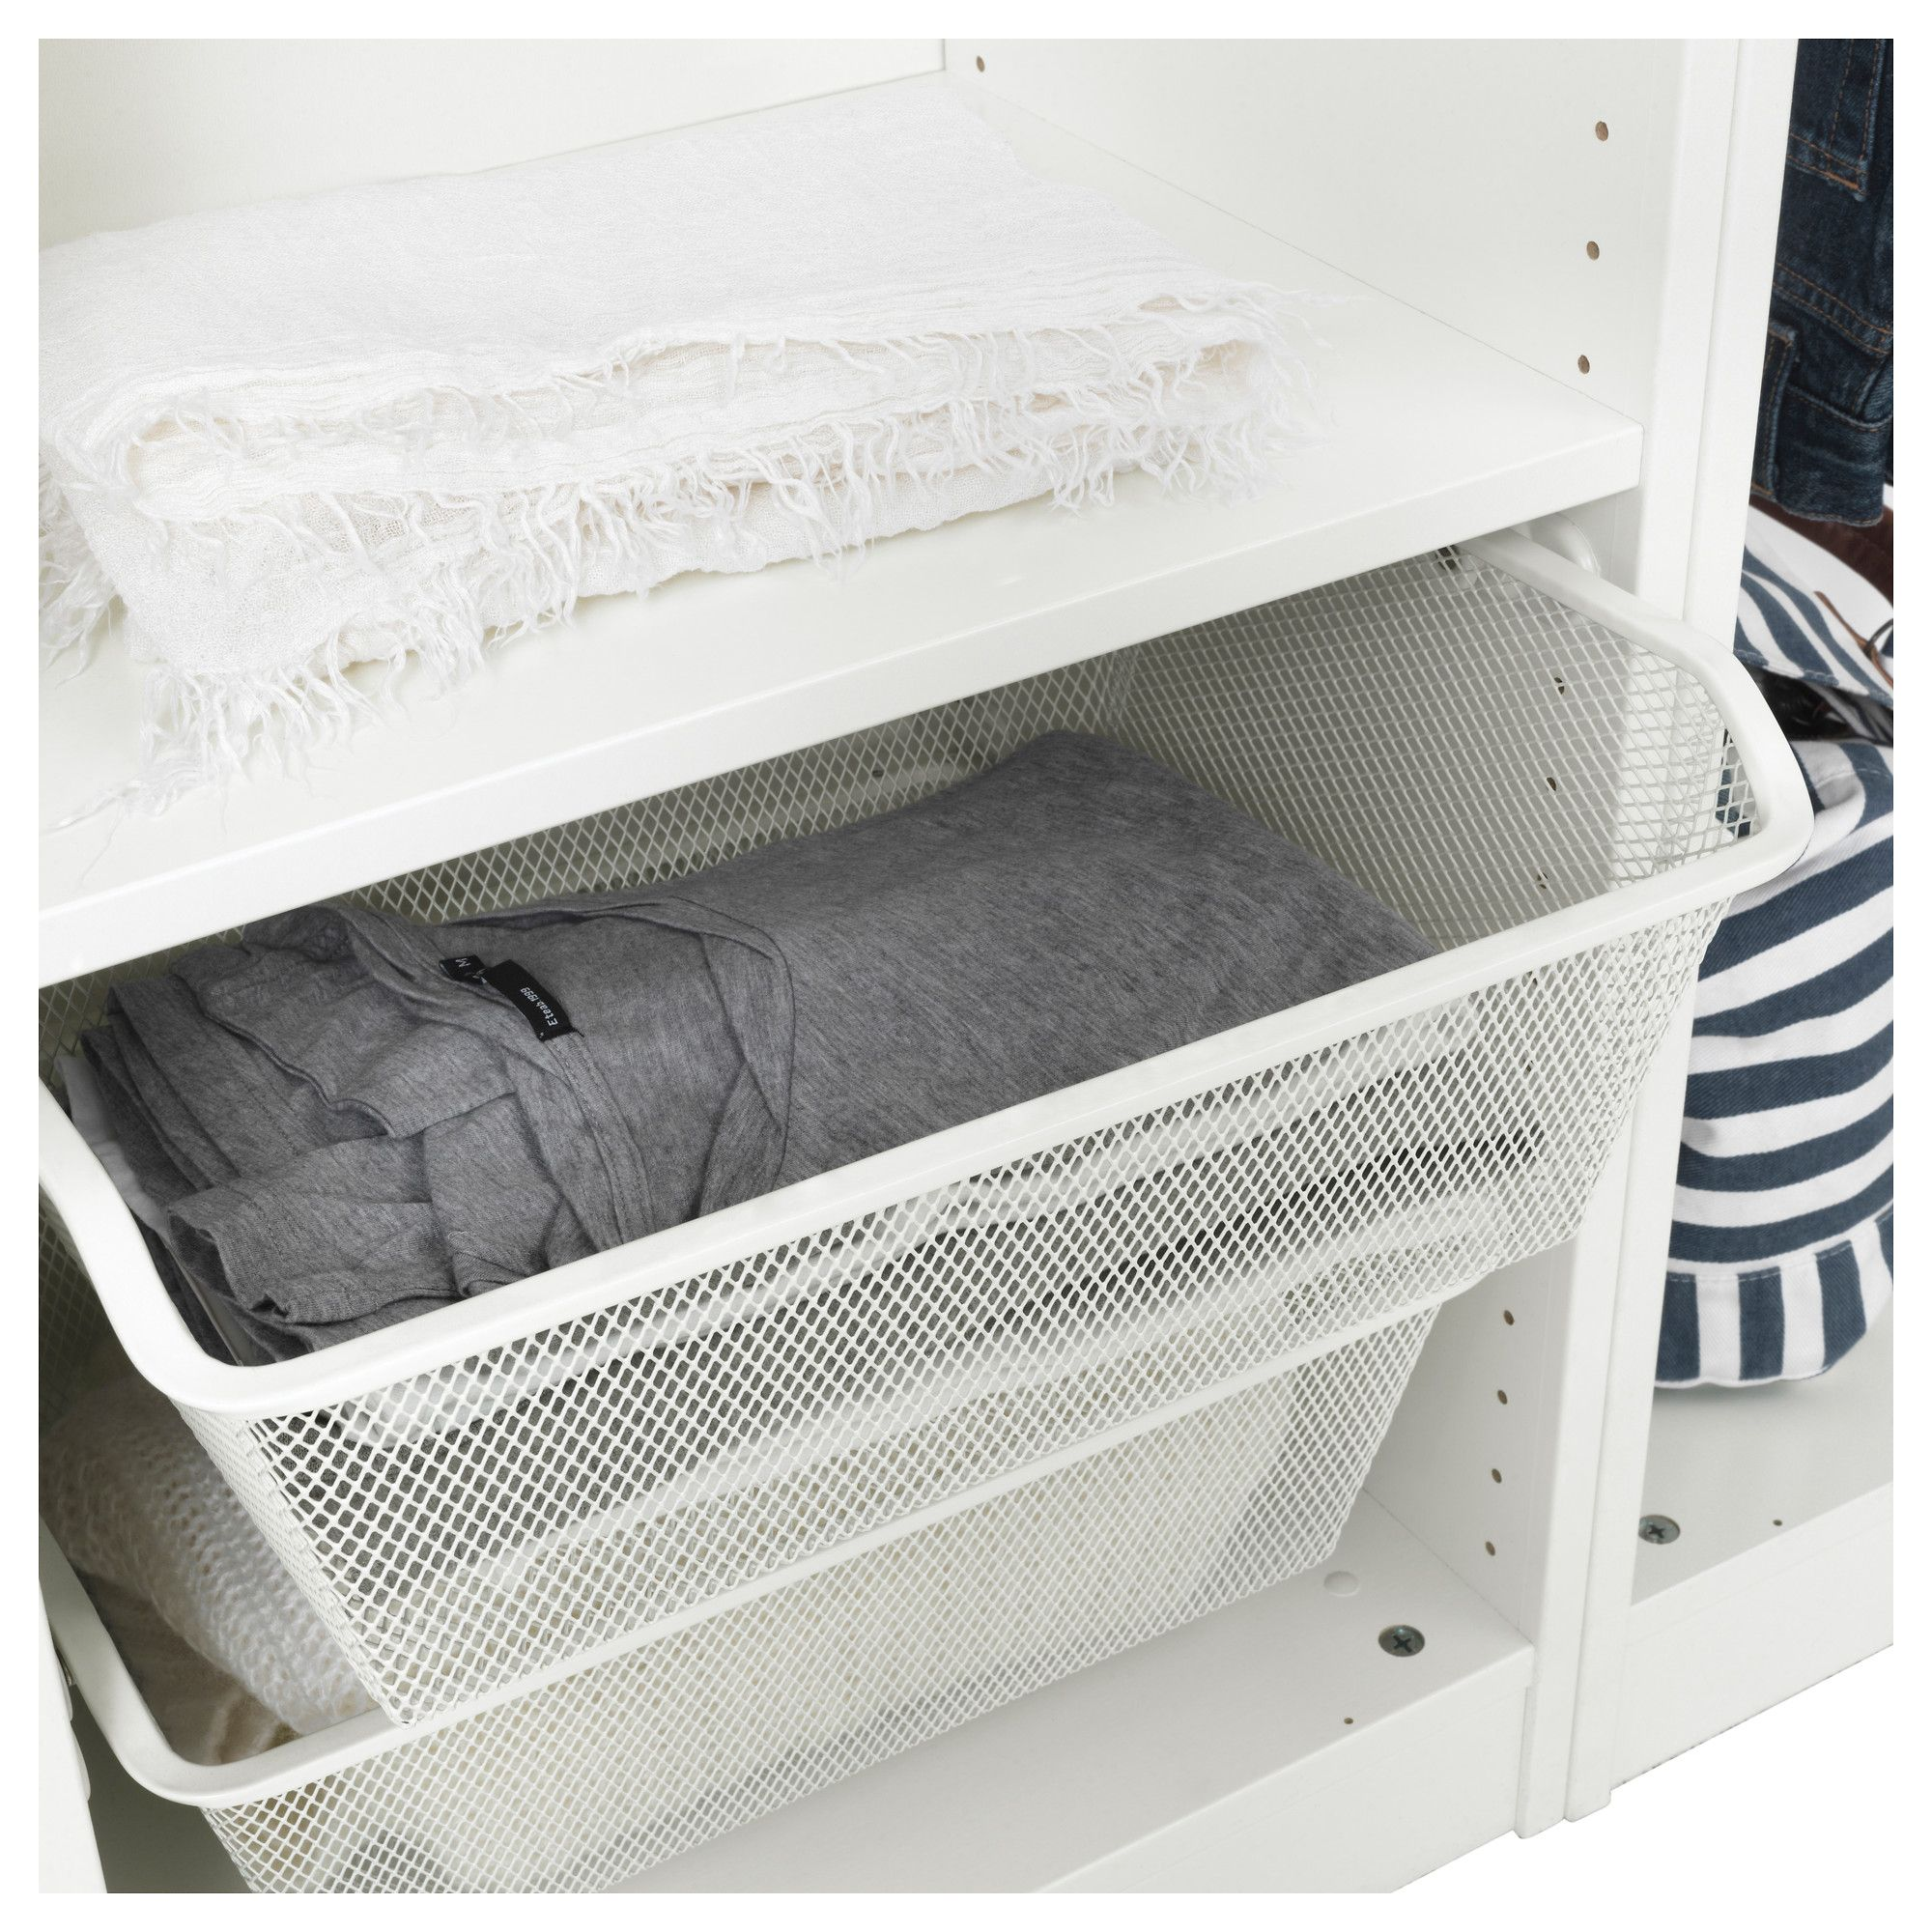 Komplement Mesh Basket With Pull Out Rail White 19 5 8x13 3 4 50x35 Cm Ikea Komplement Ikea Ikea Pax Wardrobe